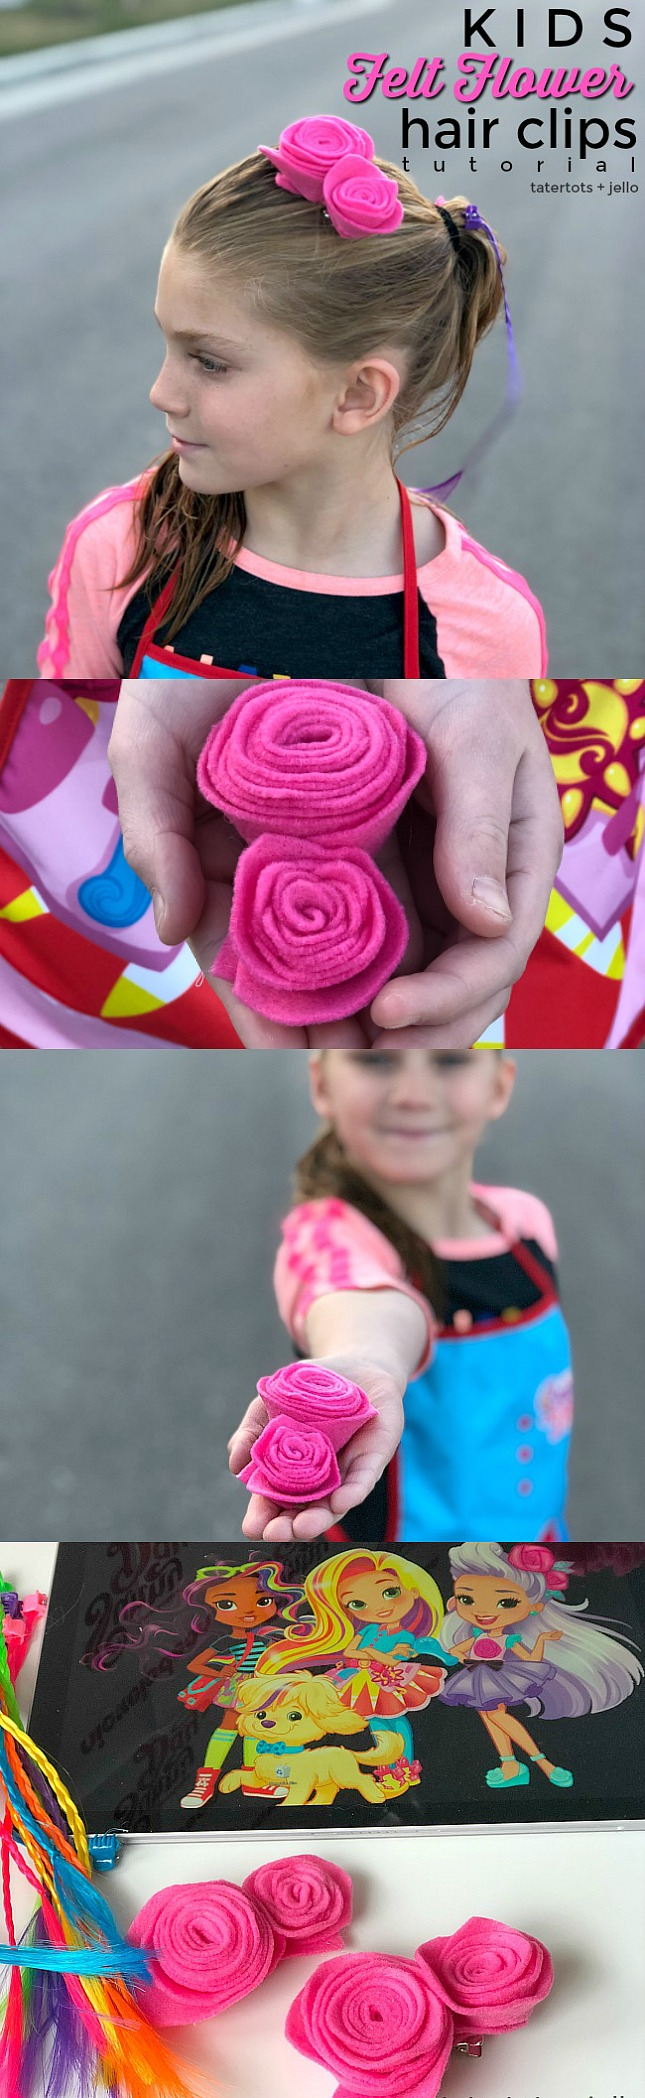 Kids craft Felt Flower Hair Clips. Kids will love making these pretty flower hair clips based on the NickJr Sunny Day animated series. Watch Sunny Day weekdays on Nickelodeon! #ad #nickelodeon #nickjr #sunnyday #hairclips #feltflowers #kidscraft #hairtutorial #craftidea